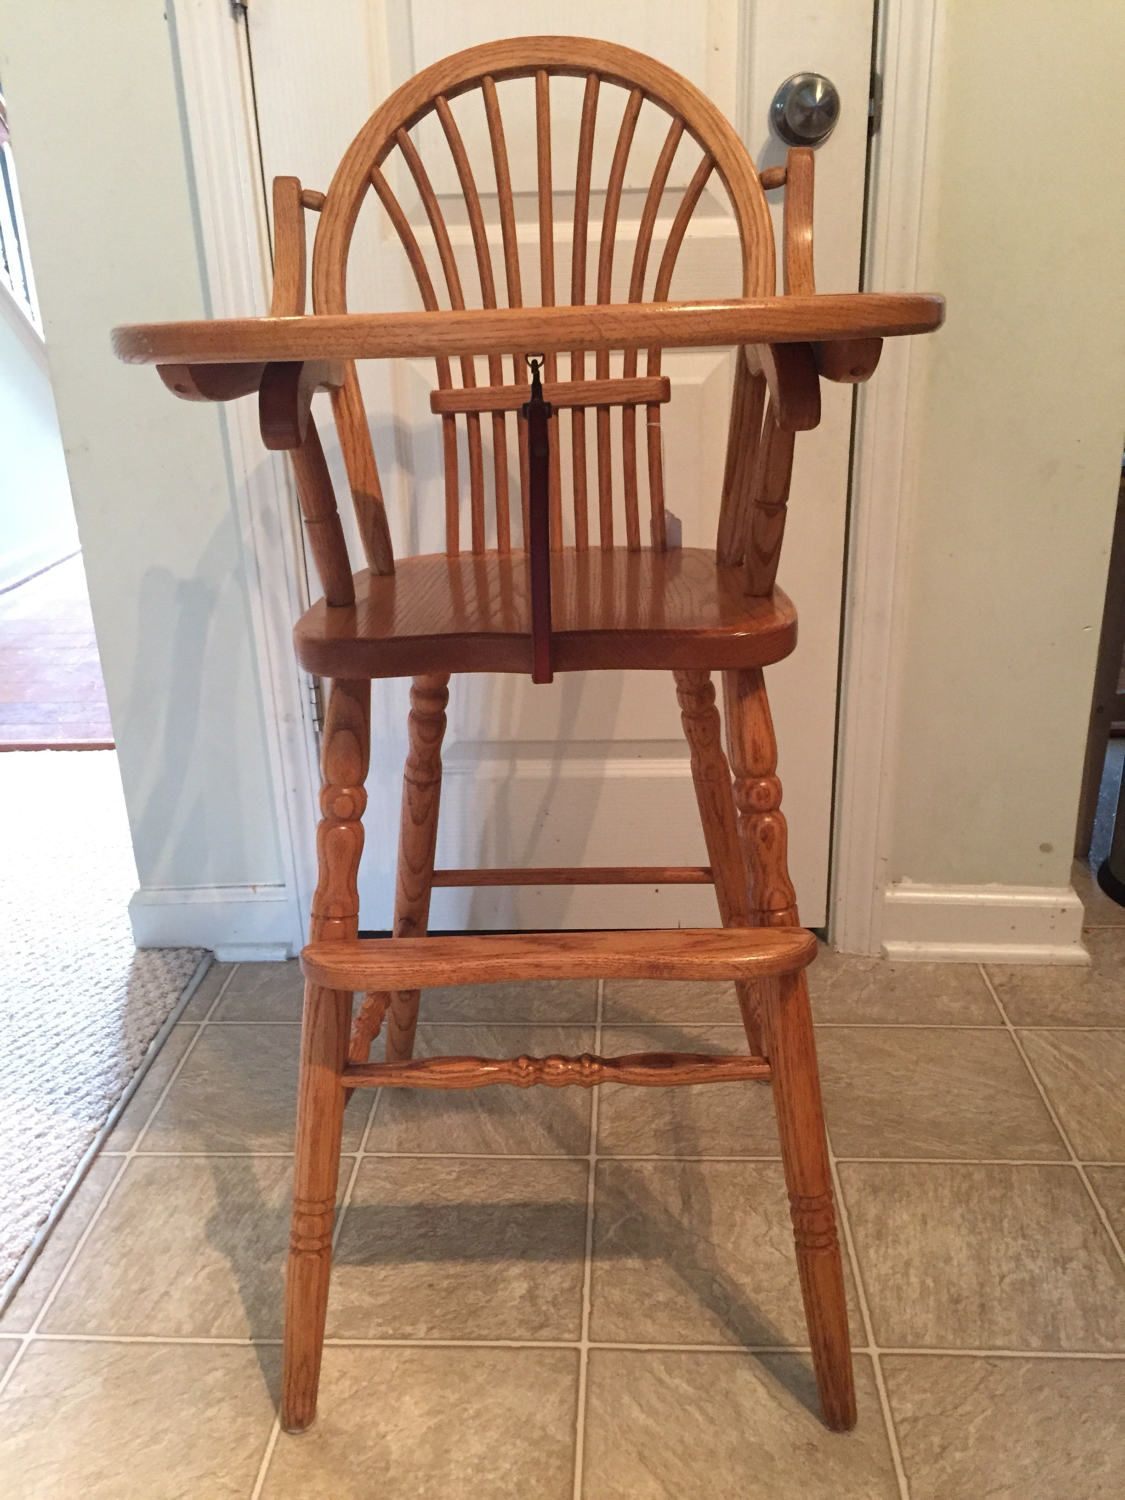 Reduced Price, Vintage Wooden High Chair, Jenny Lind, Antique High Chair,  Vintage - Reduced Price, Vintage Wooden High Chair, Jenny Lind, Antique High